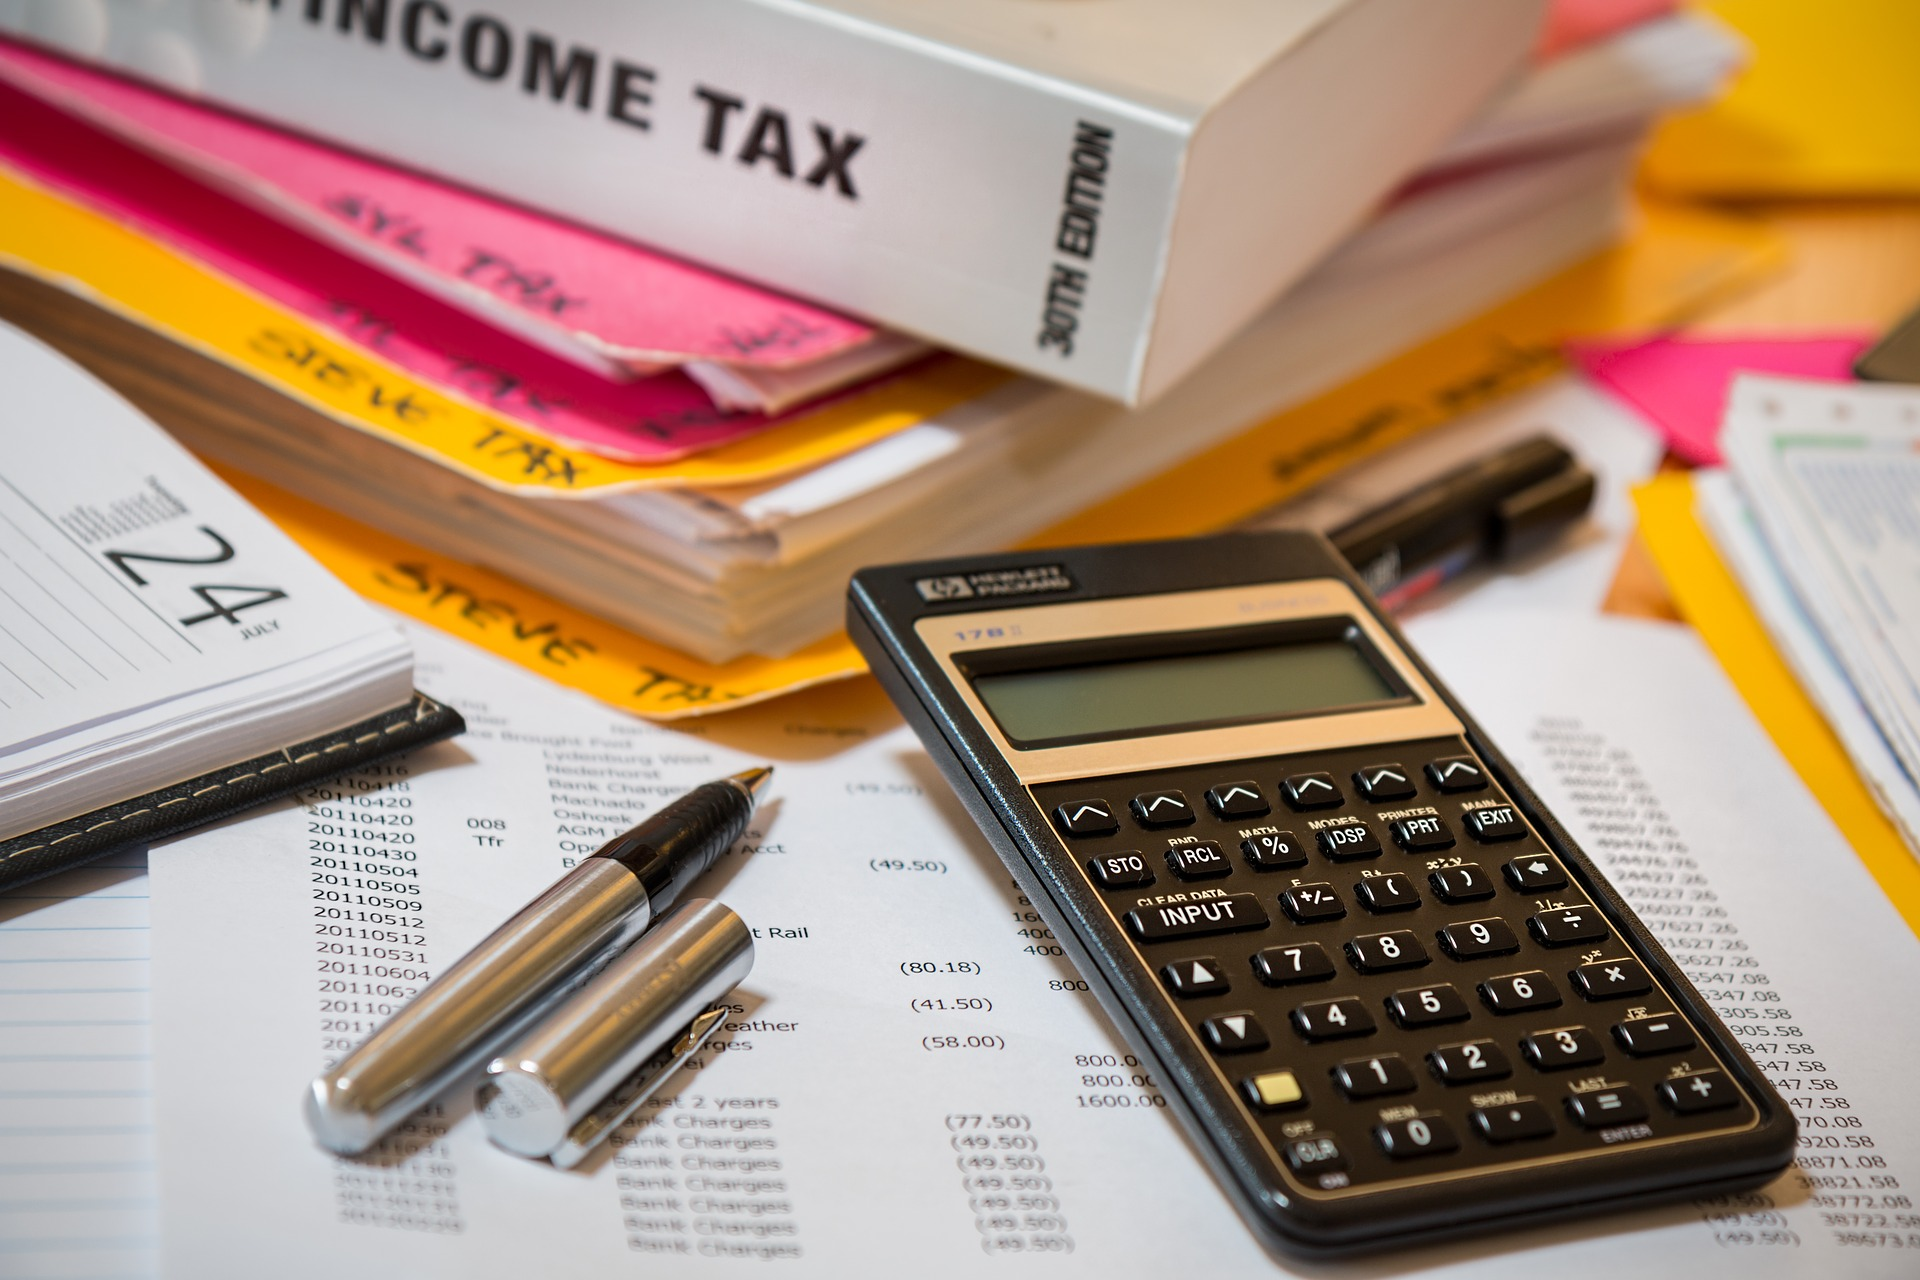 A desk with various accounting materials piled on top, including a calculator, a financial spreadsheet, and a book about income tax.